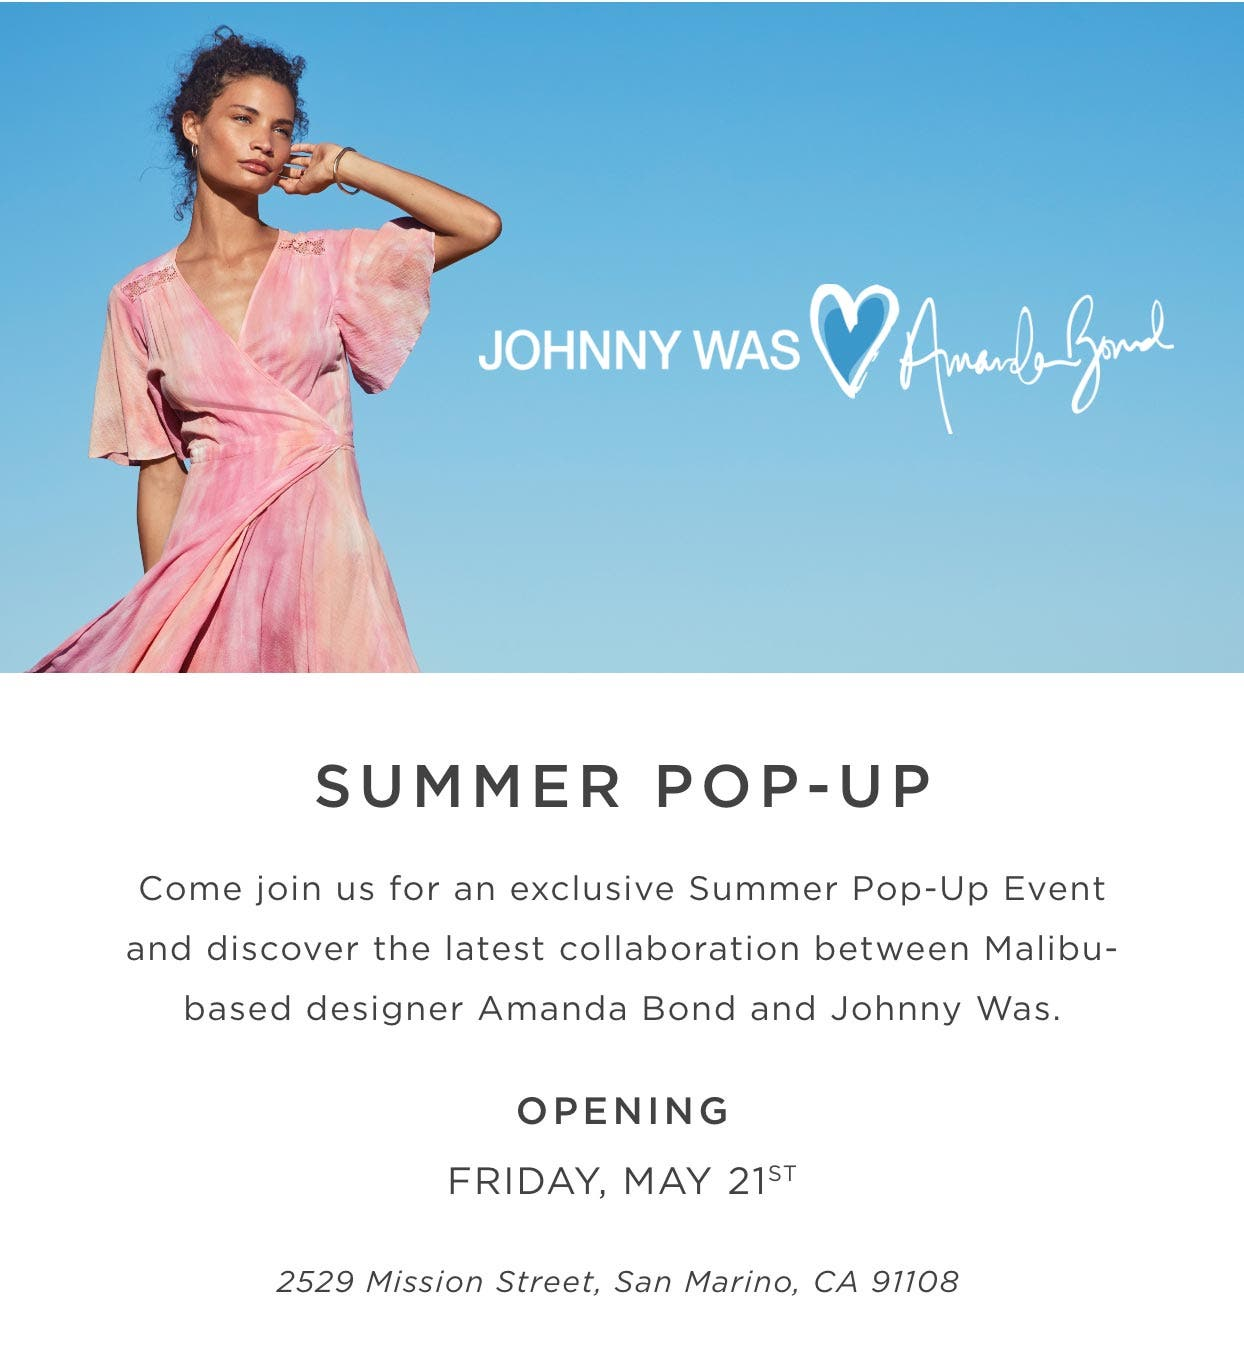 Johnny Was x Amanda Bond - Summer Pop-Up Come Join us for an exclusive pop up event and discover the latest collaboration between Malibu-based designer Amanda Bond and Johnny Was.. Opening Friday, May 21st 2529 Mission Street, San Marino, CA 91108